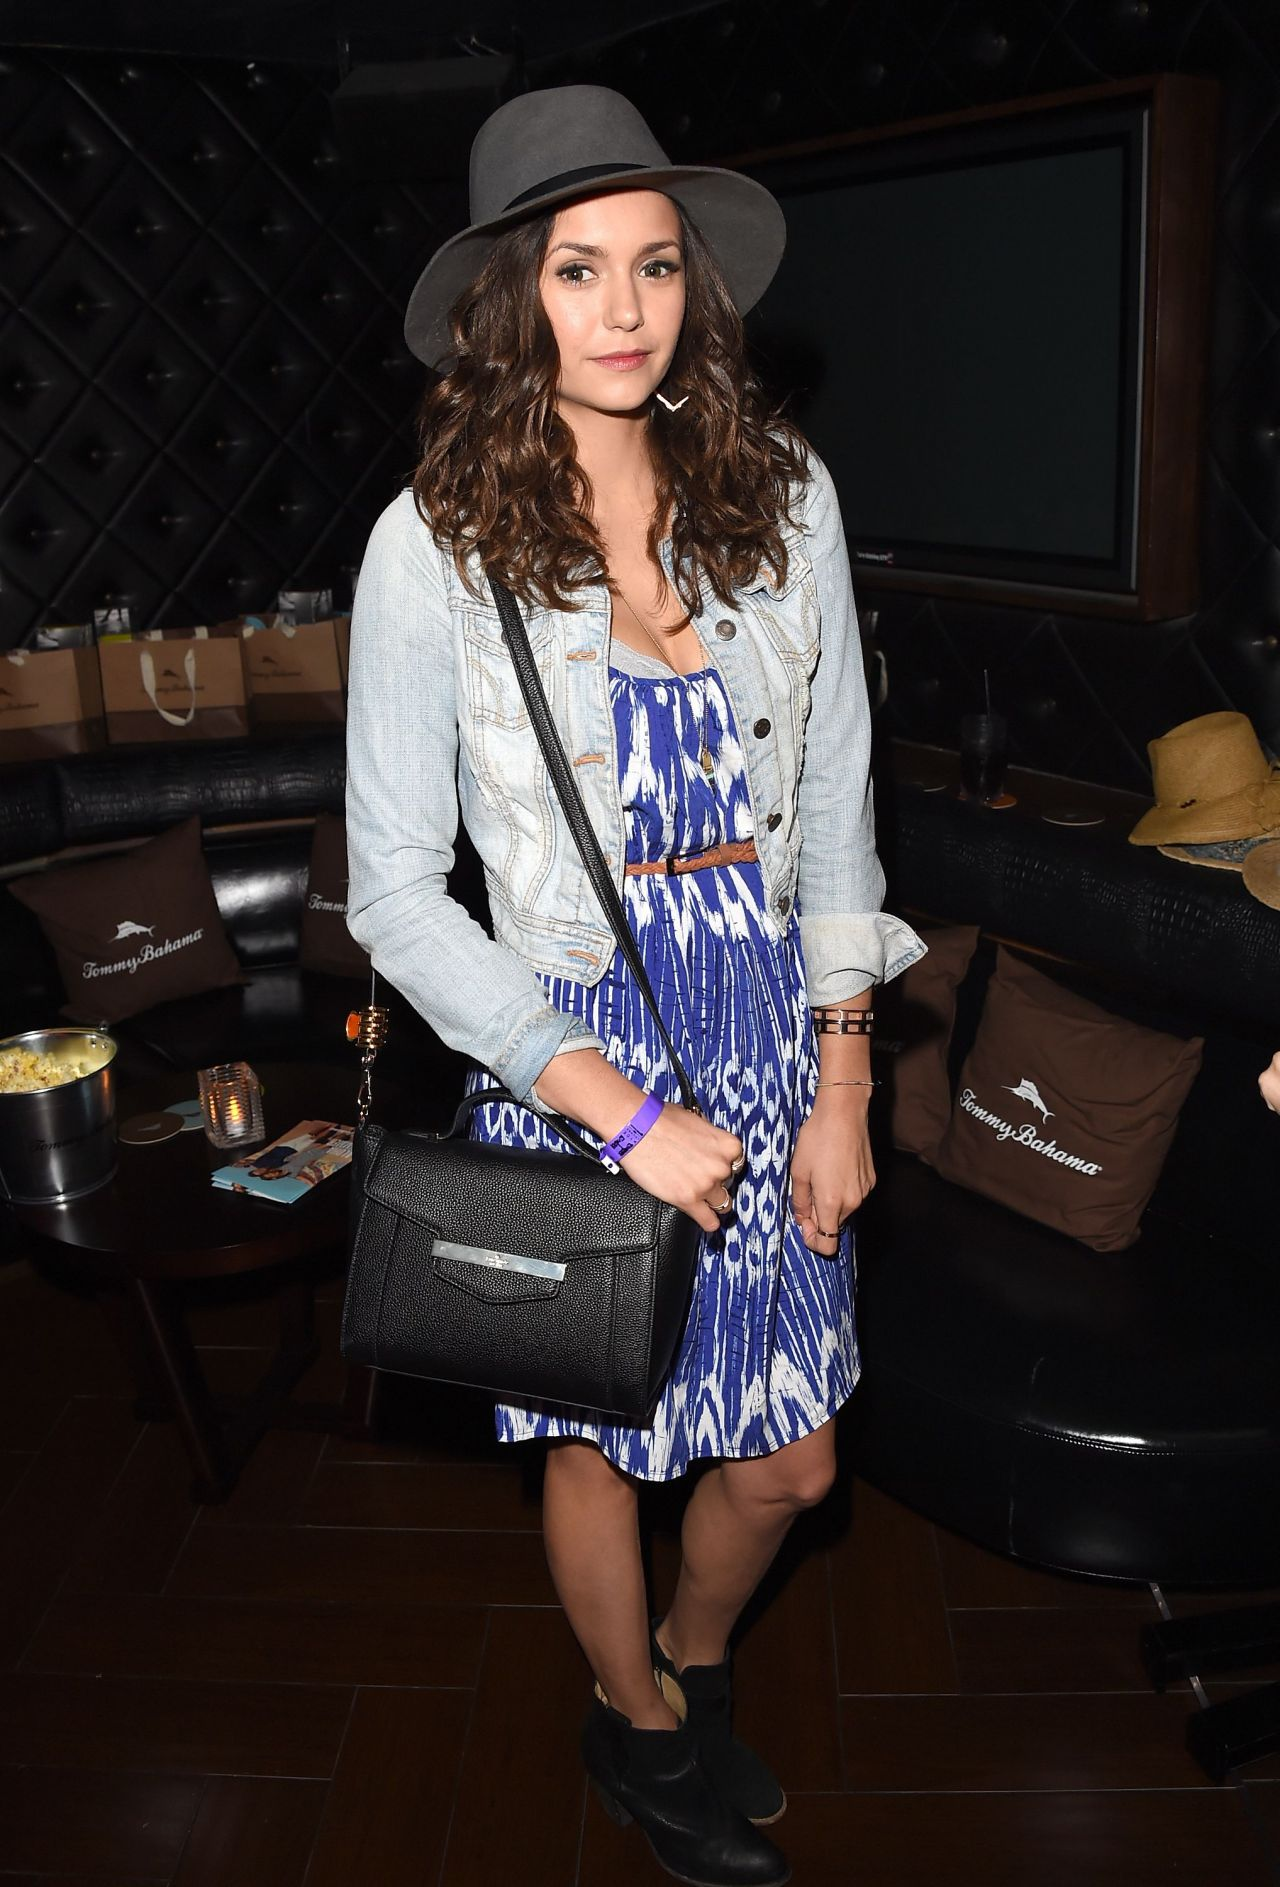 nina-dobrev-at-the-taylor-swift-concert-in-los-angeles-august-2015_1